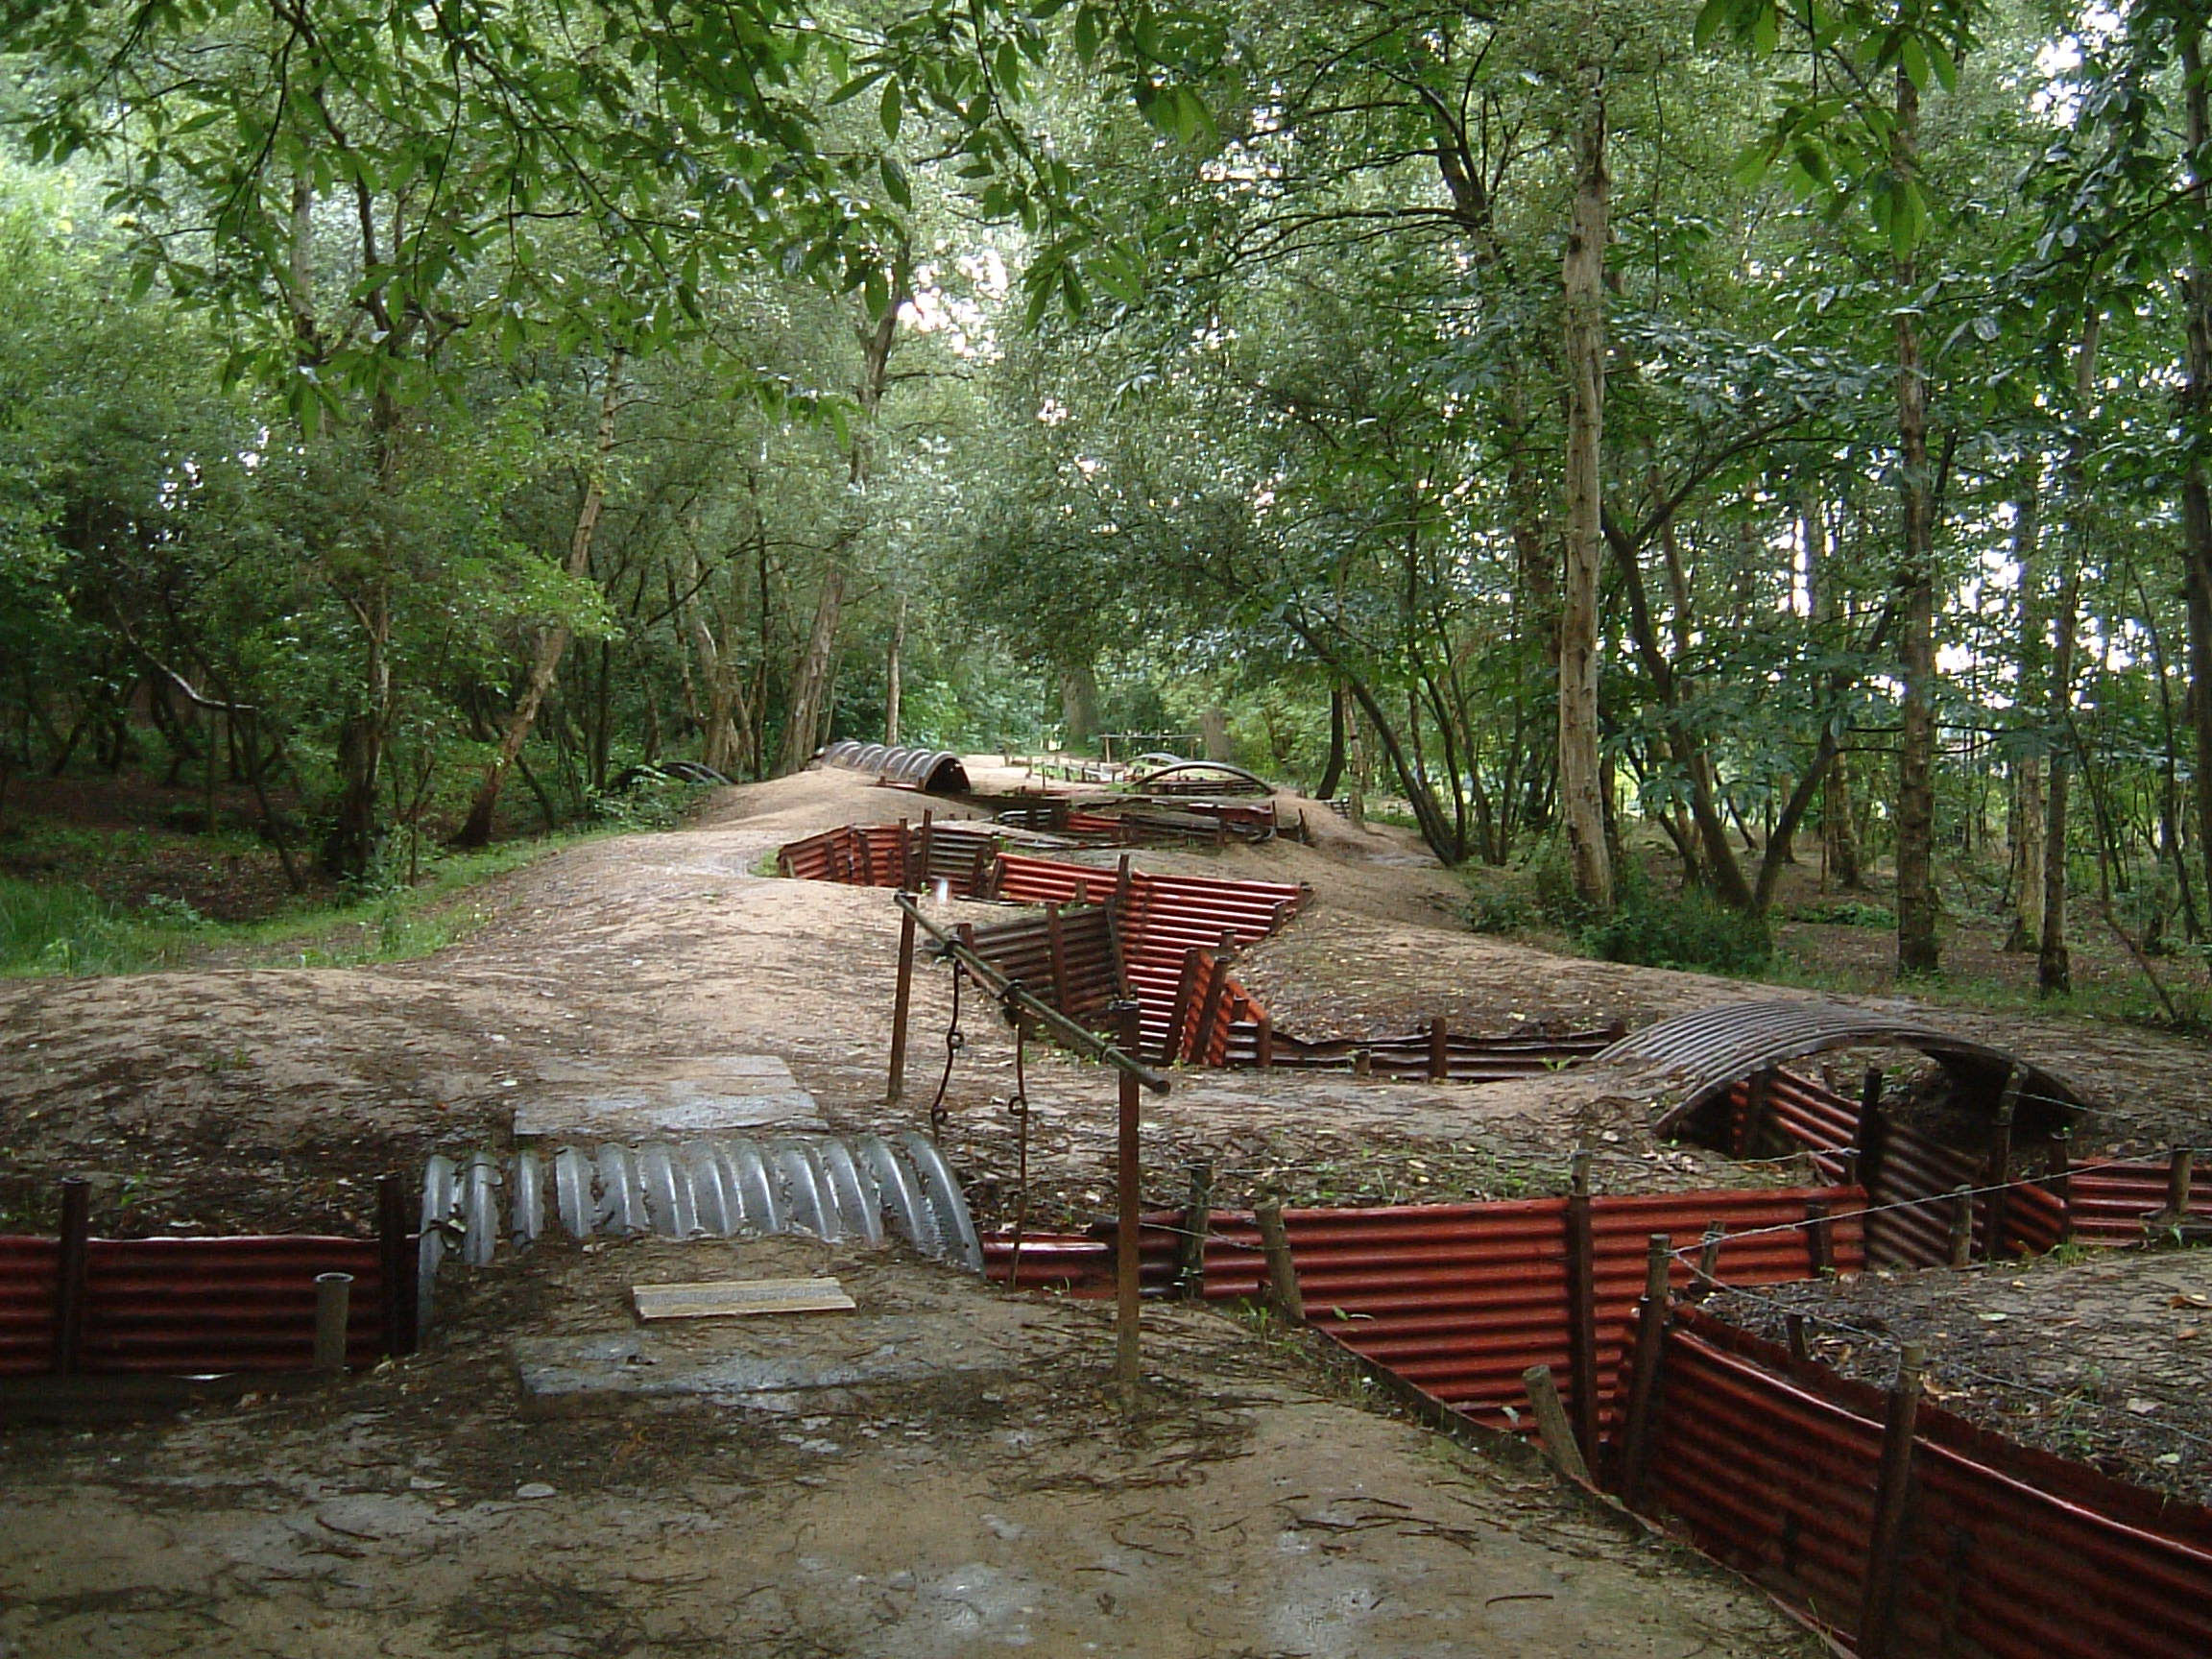 Some of the trenches from the first world war as they looked in 2002